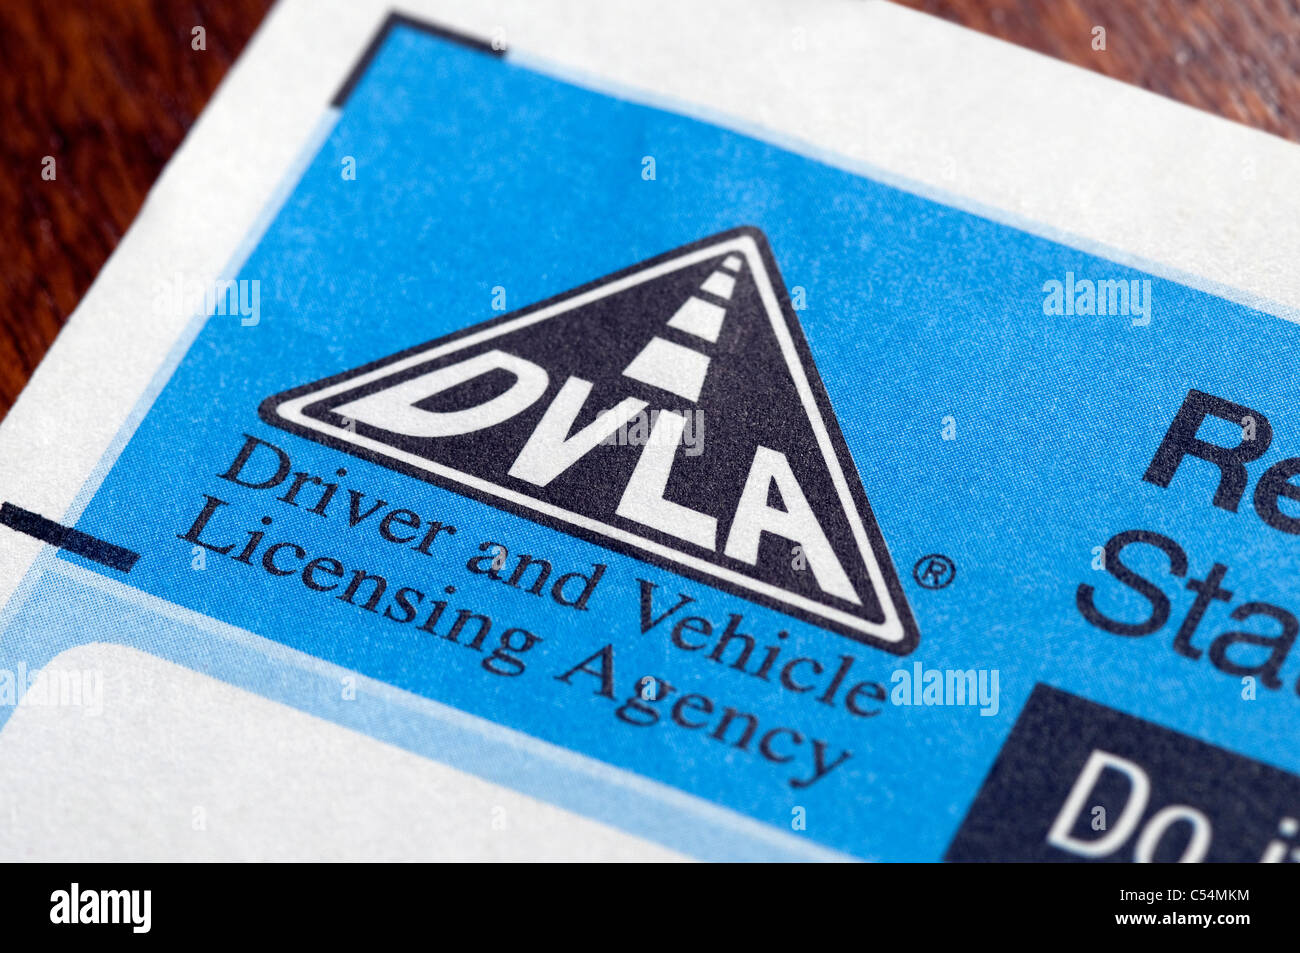 dvla tax disc renewal reminder form - Stock Image